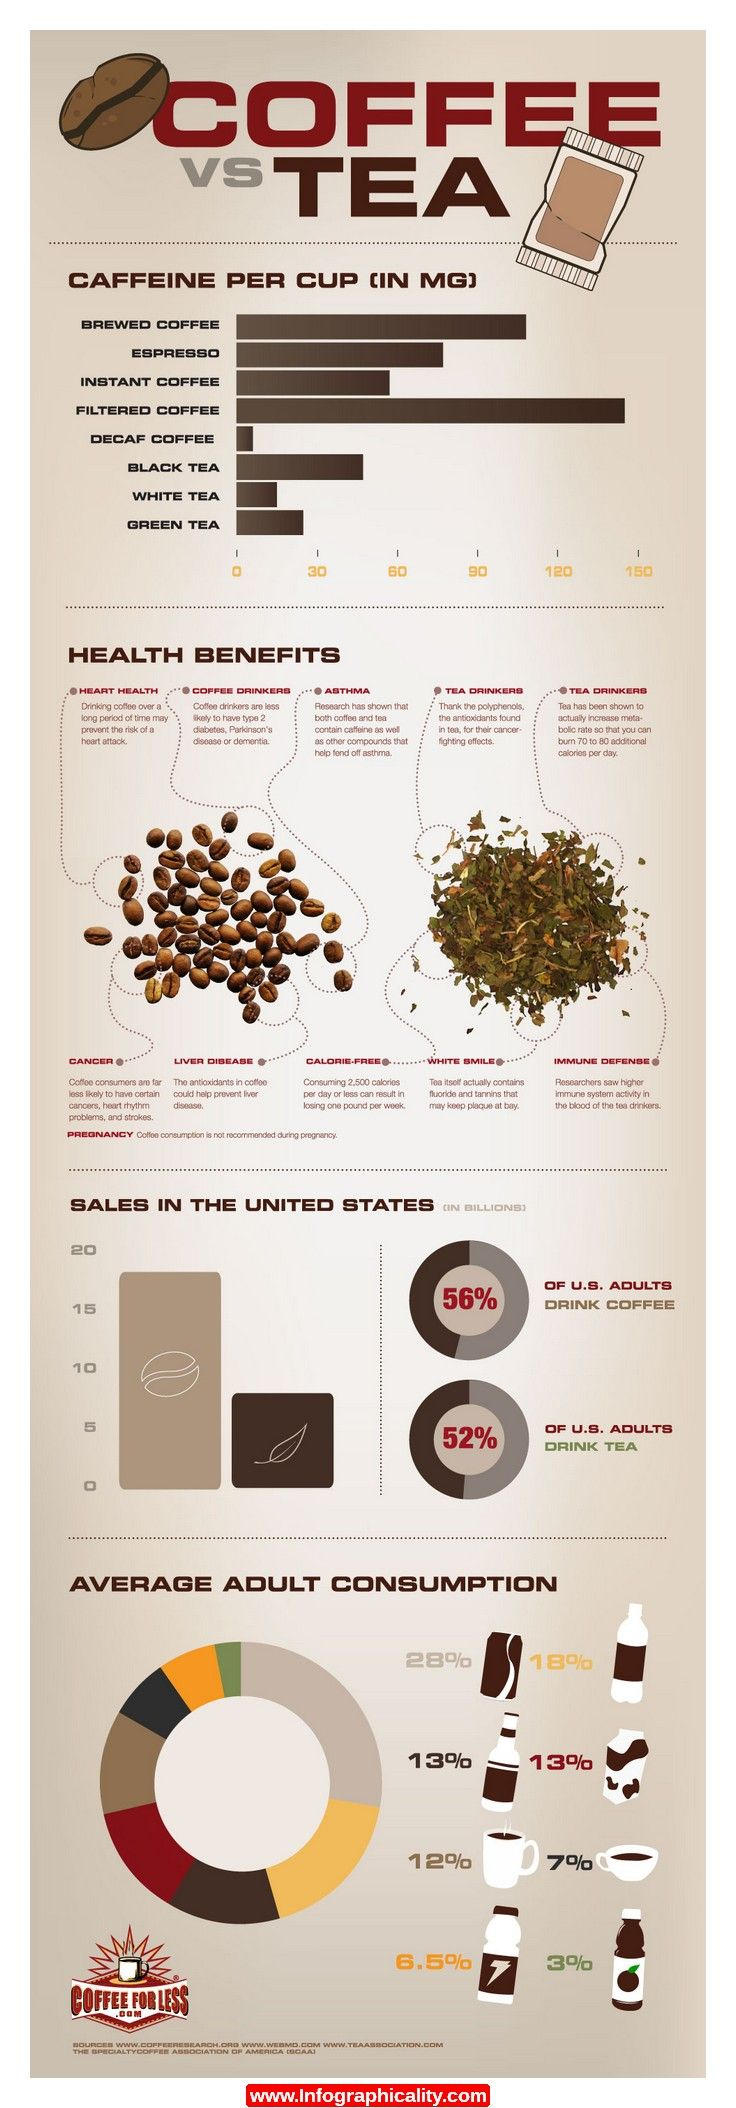 Caffeine, health benefits, sales in the US and consumption